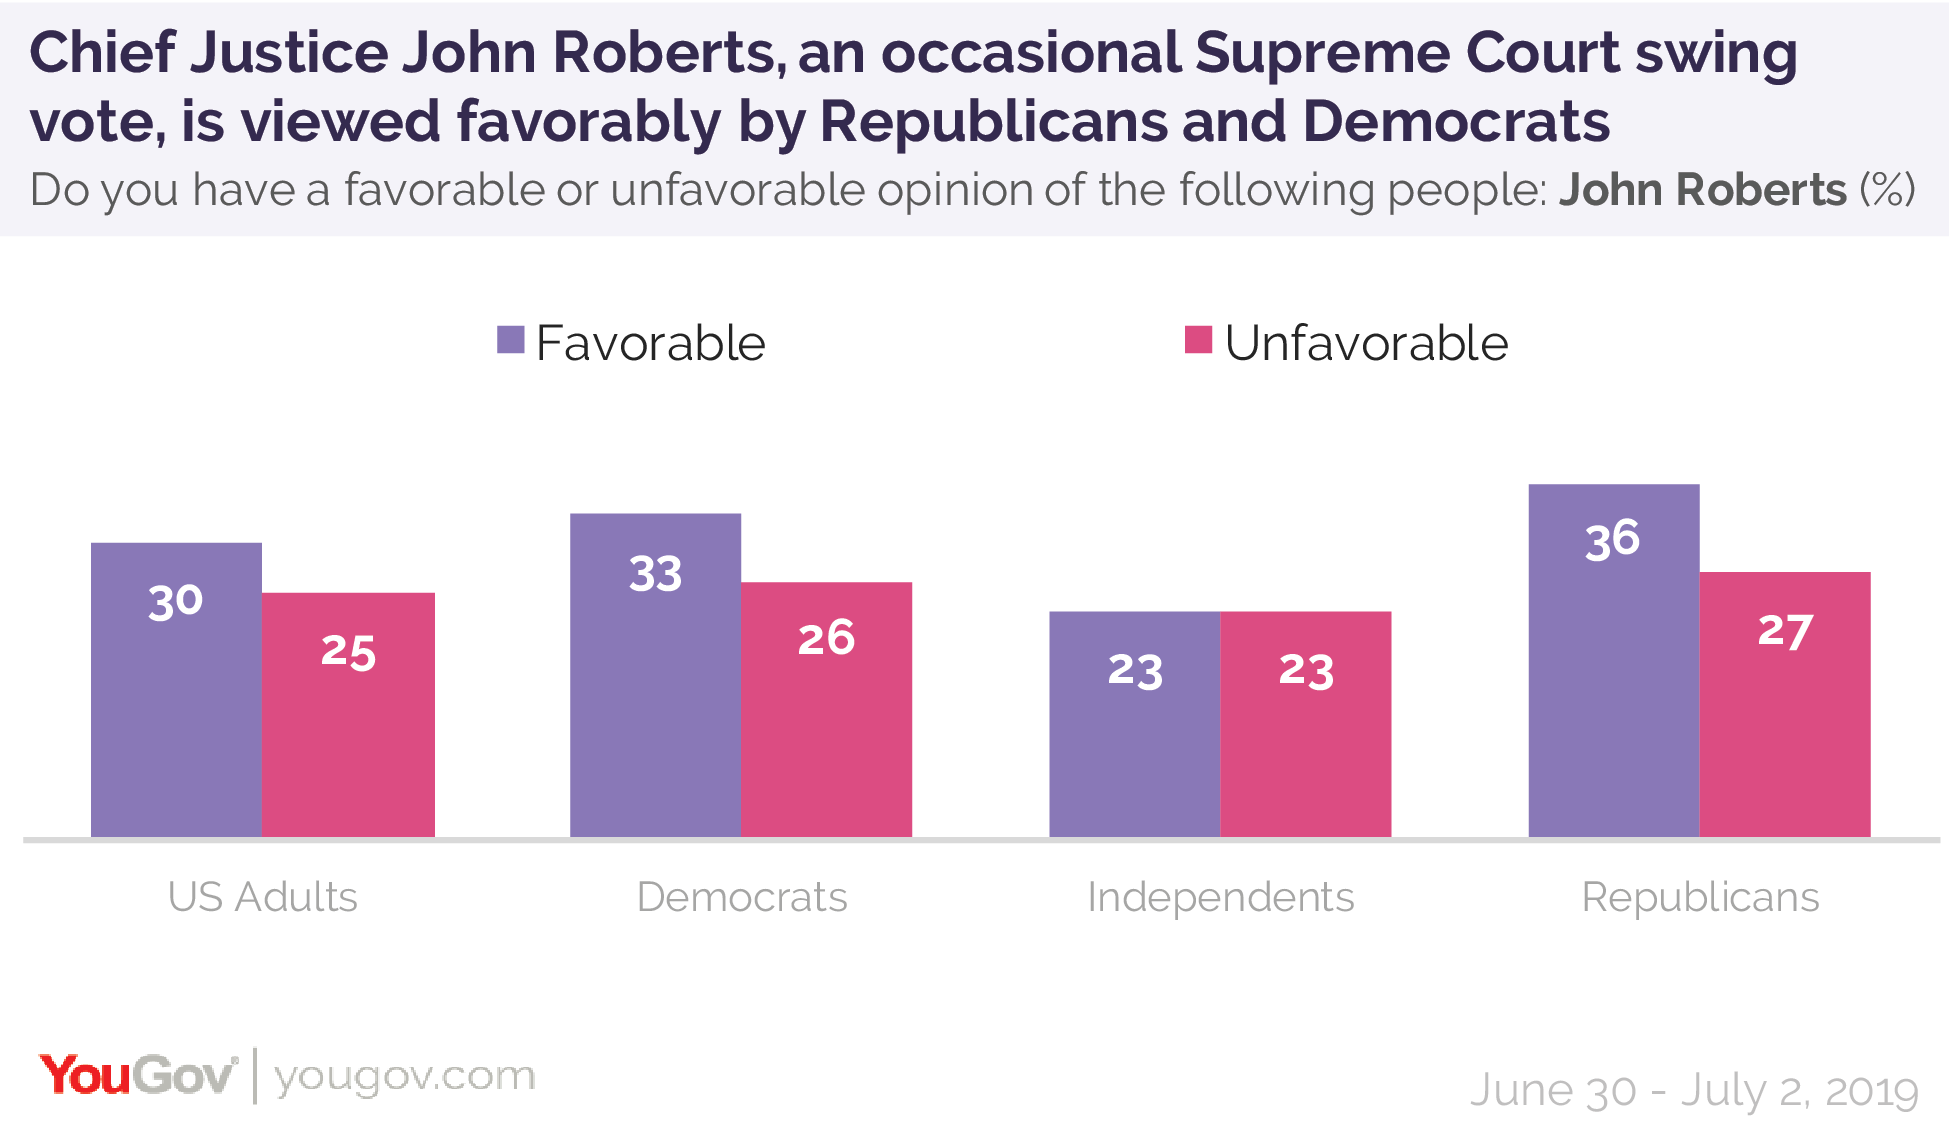 Chief Justice John Roberts, an occasional Supreme Court swing vote, is viewed favorably by Republicans and Democrats